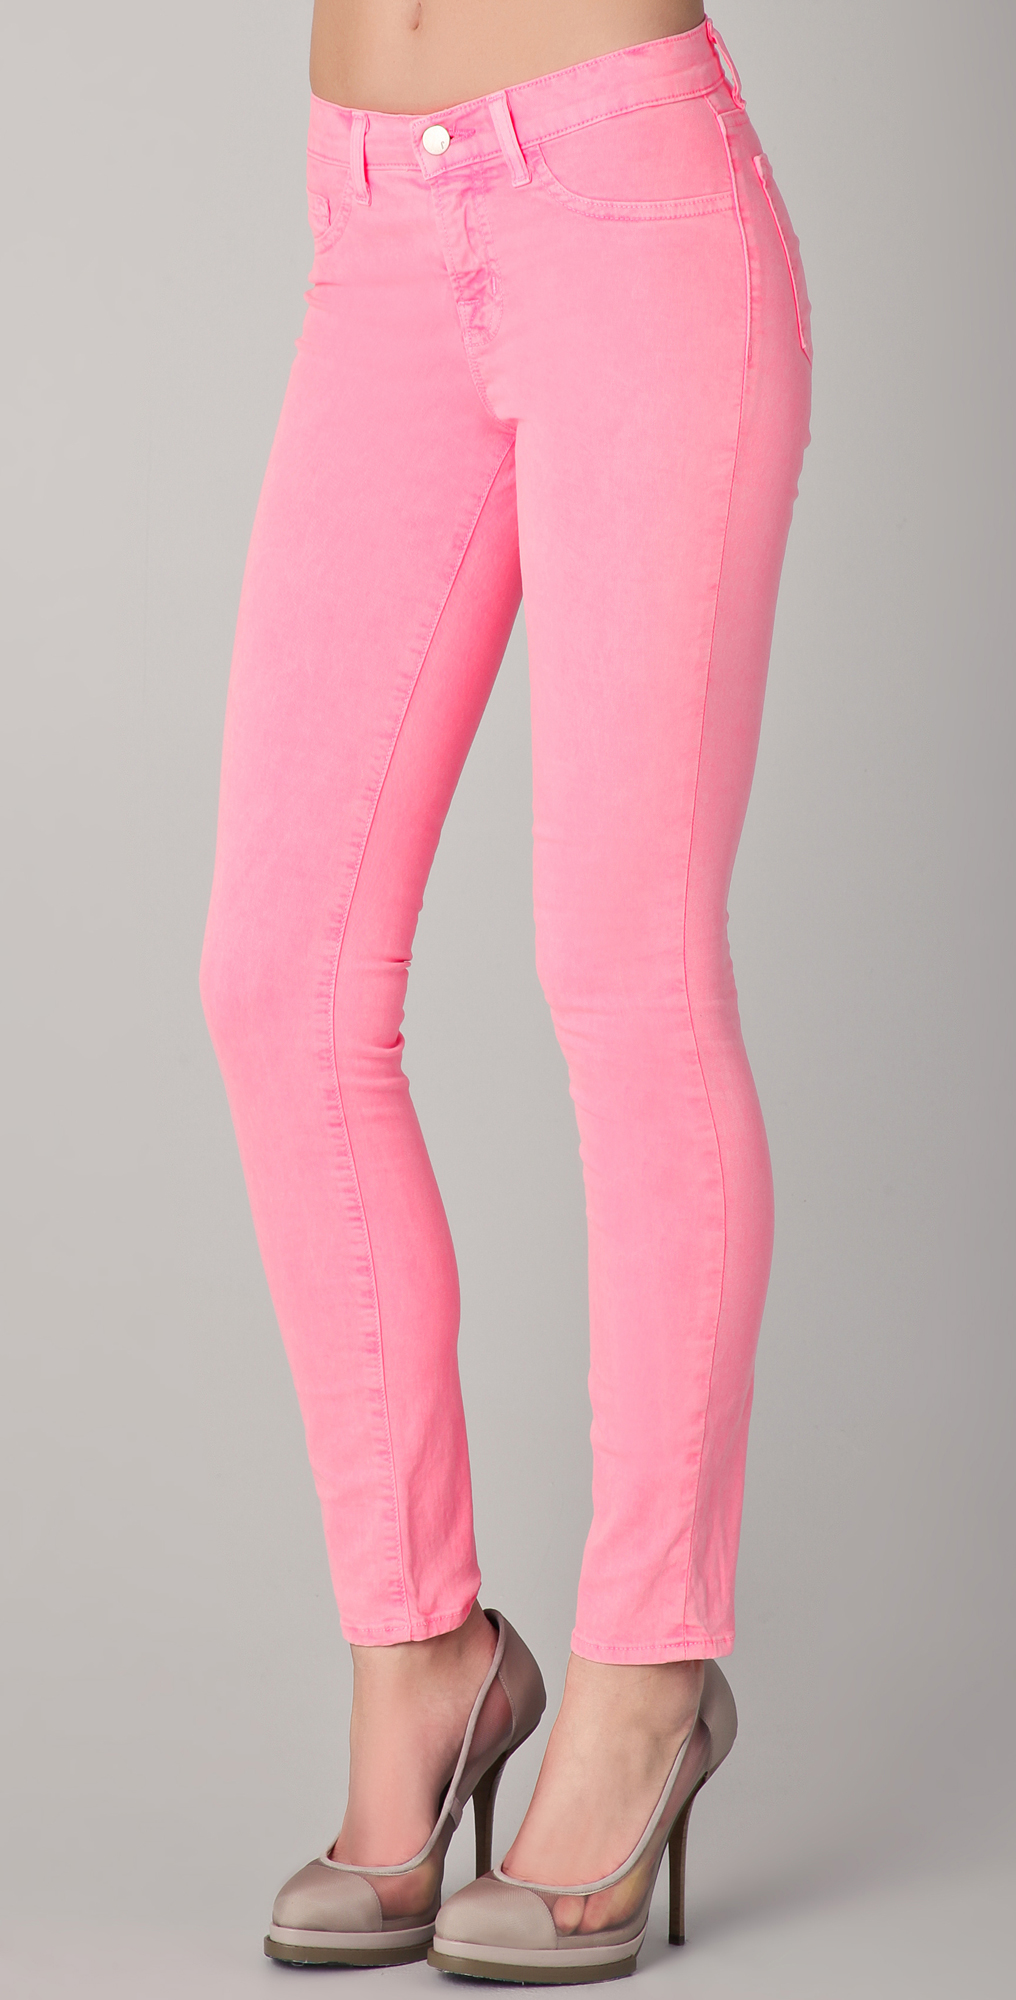 Pink Neon skinny jeans 2019